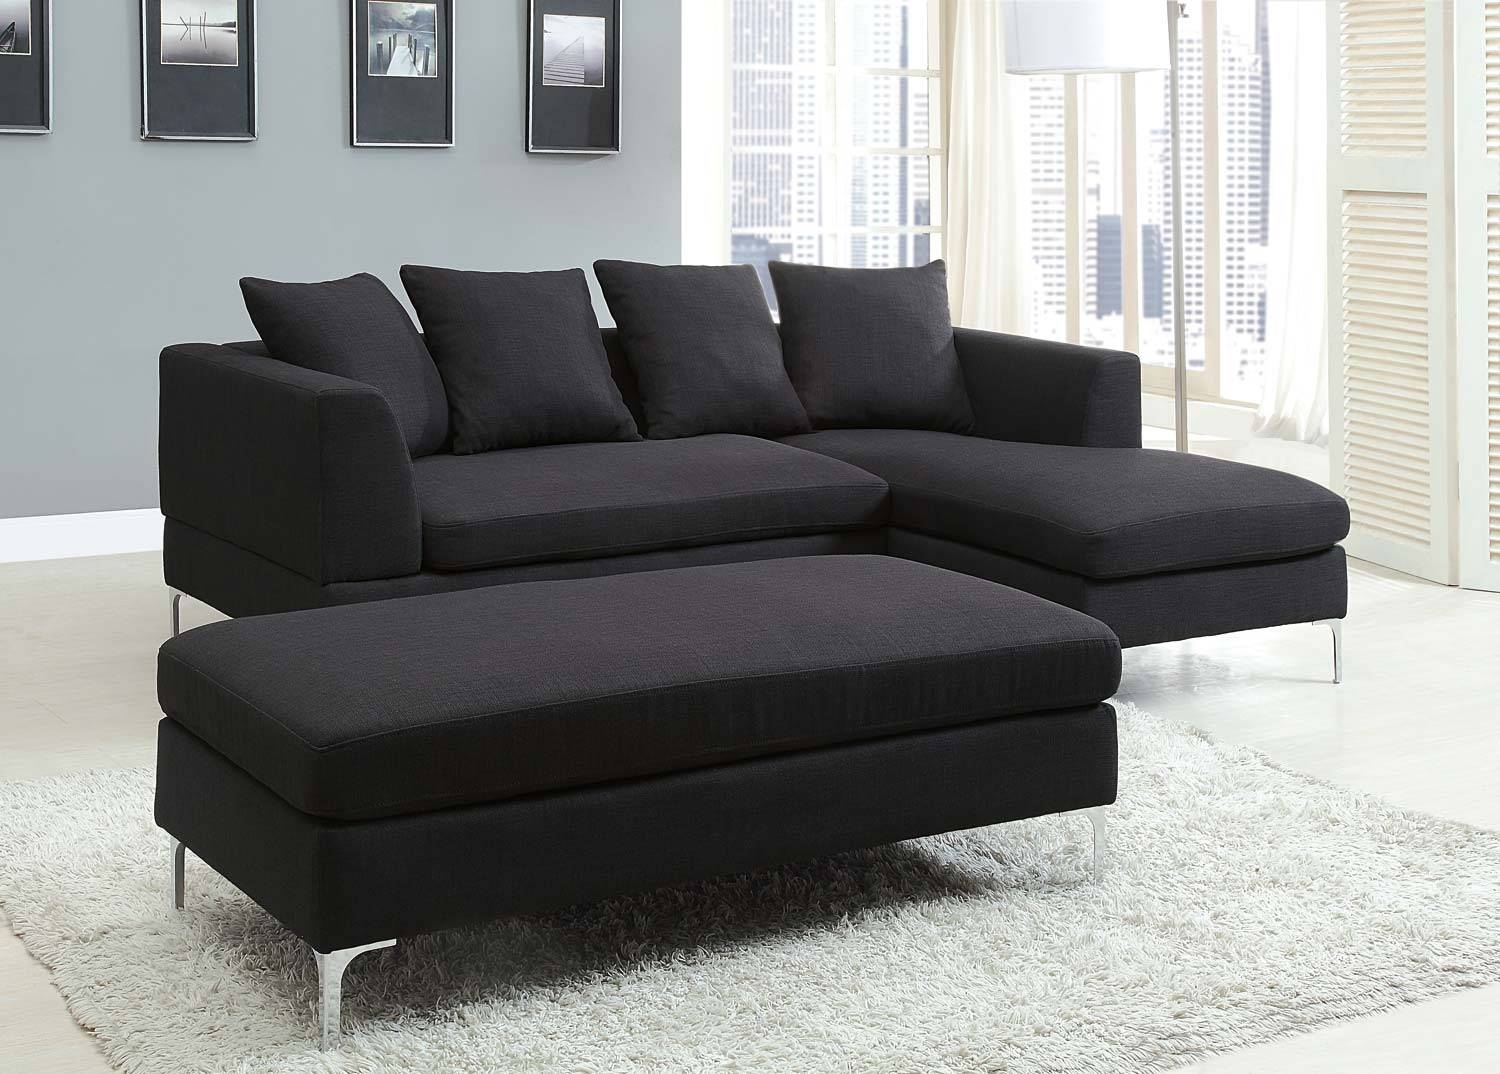 Cheap Black Sectional Sofa - Tourdecarroll within Cheap Black Sofas (Image 5 of 30)